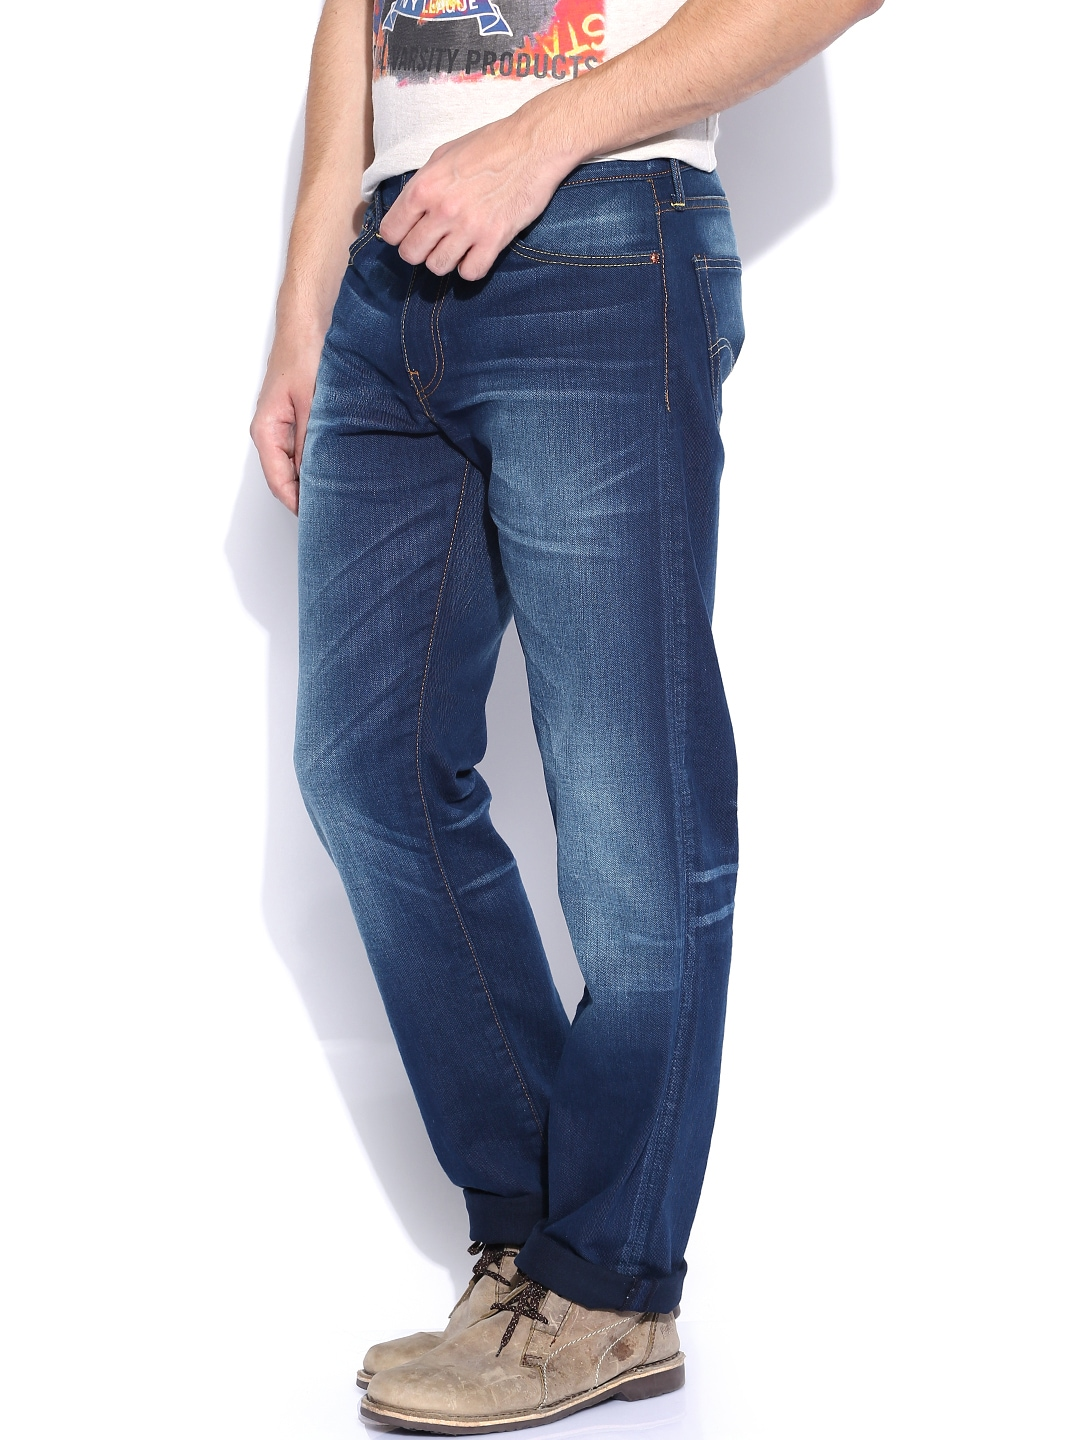 Despite the low price tag, the jeans have many of the same high quality construction details you'd find on mid to end-level denim like hidden rivets on the back .